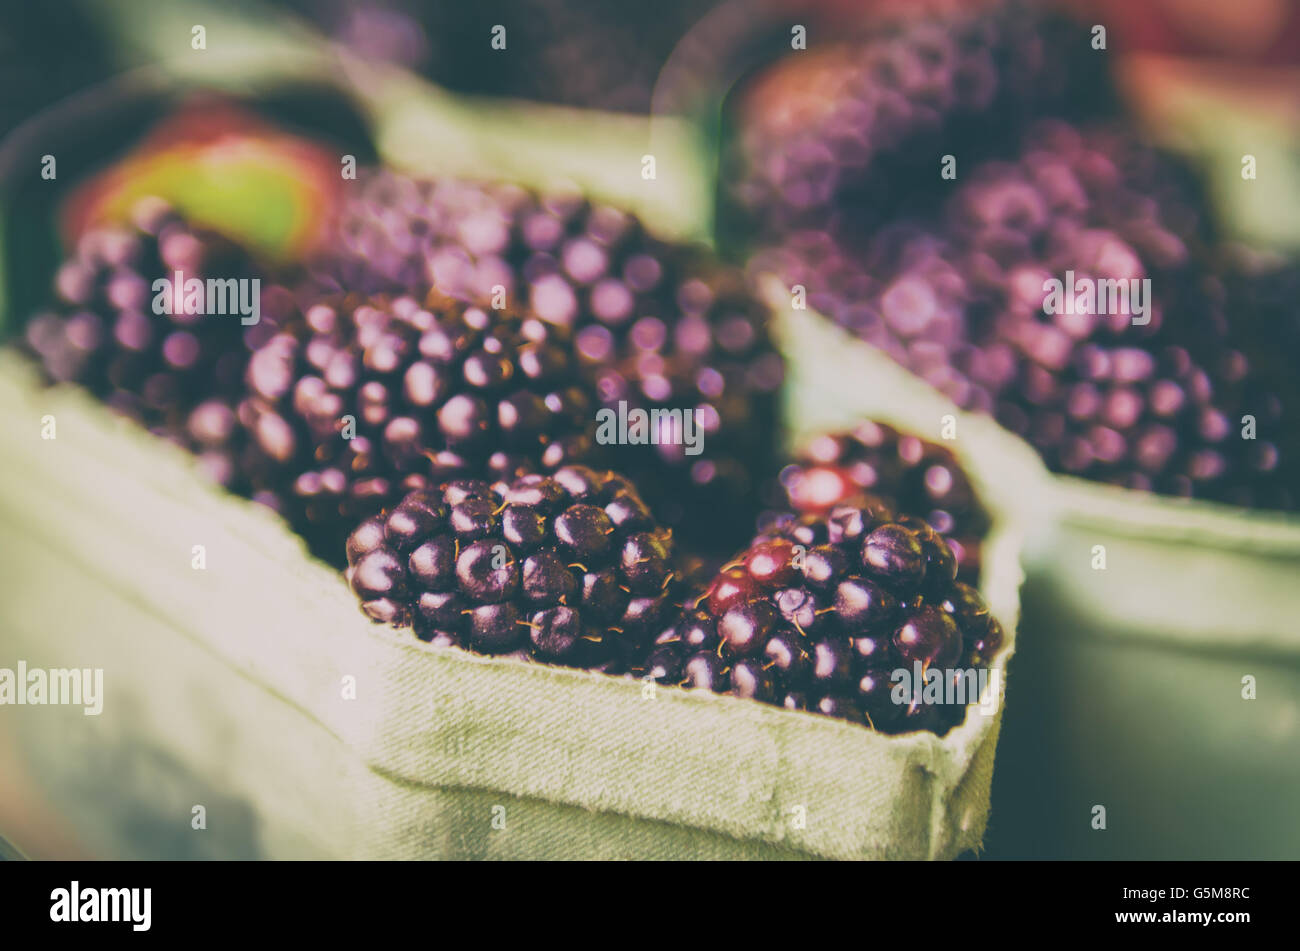 Blackberry at market - Stock Image